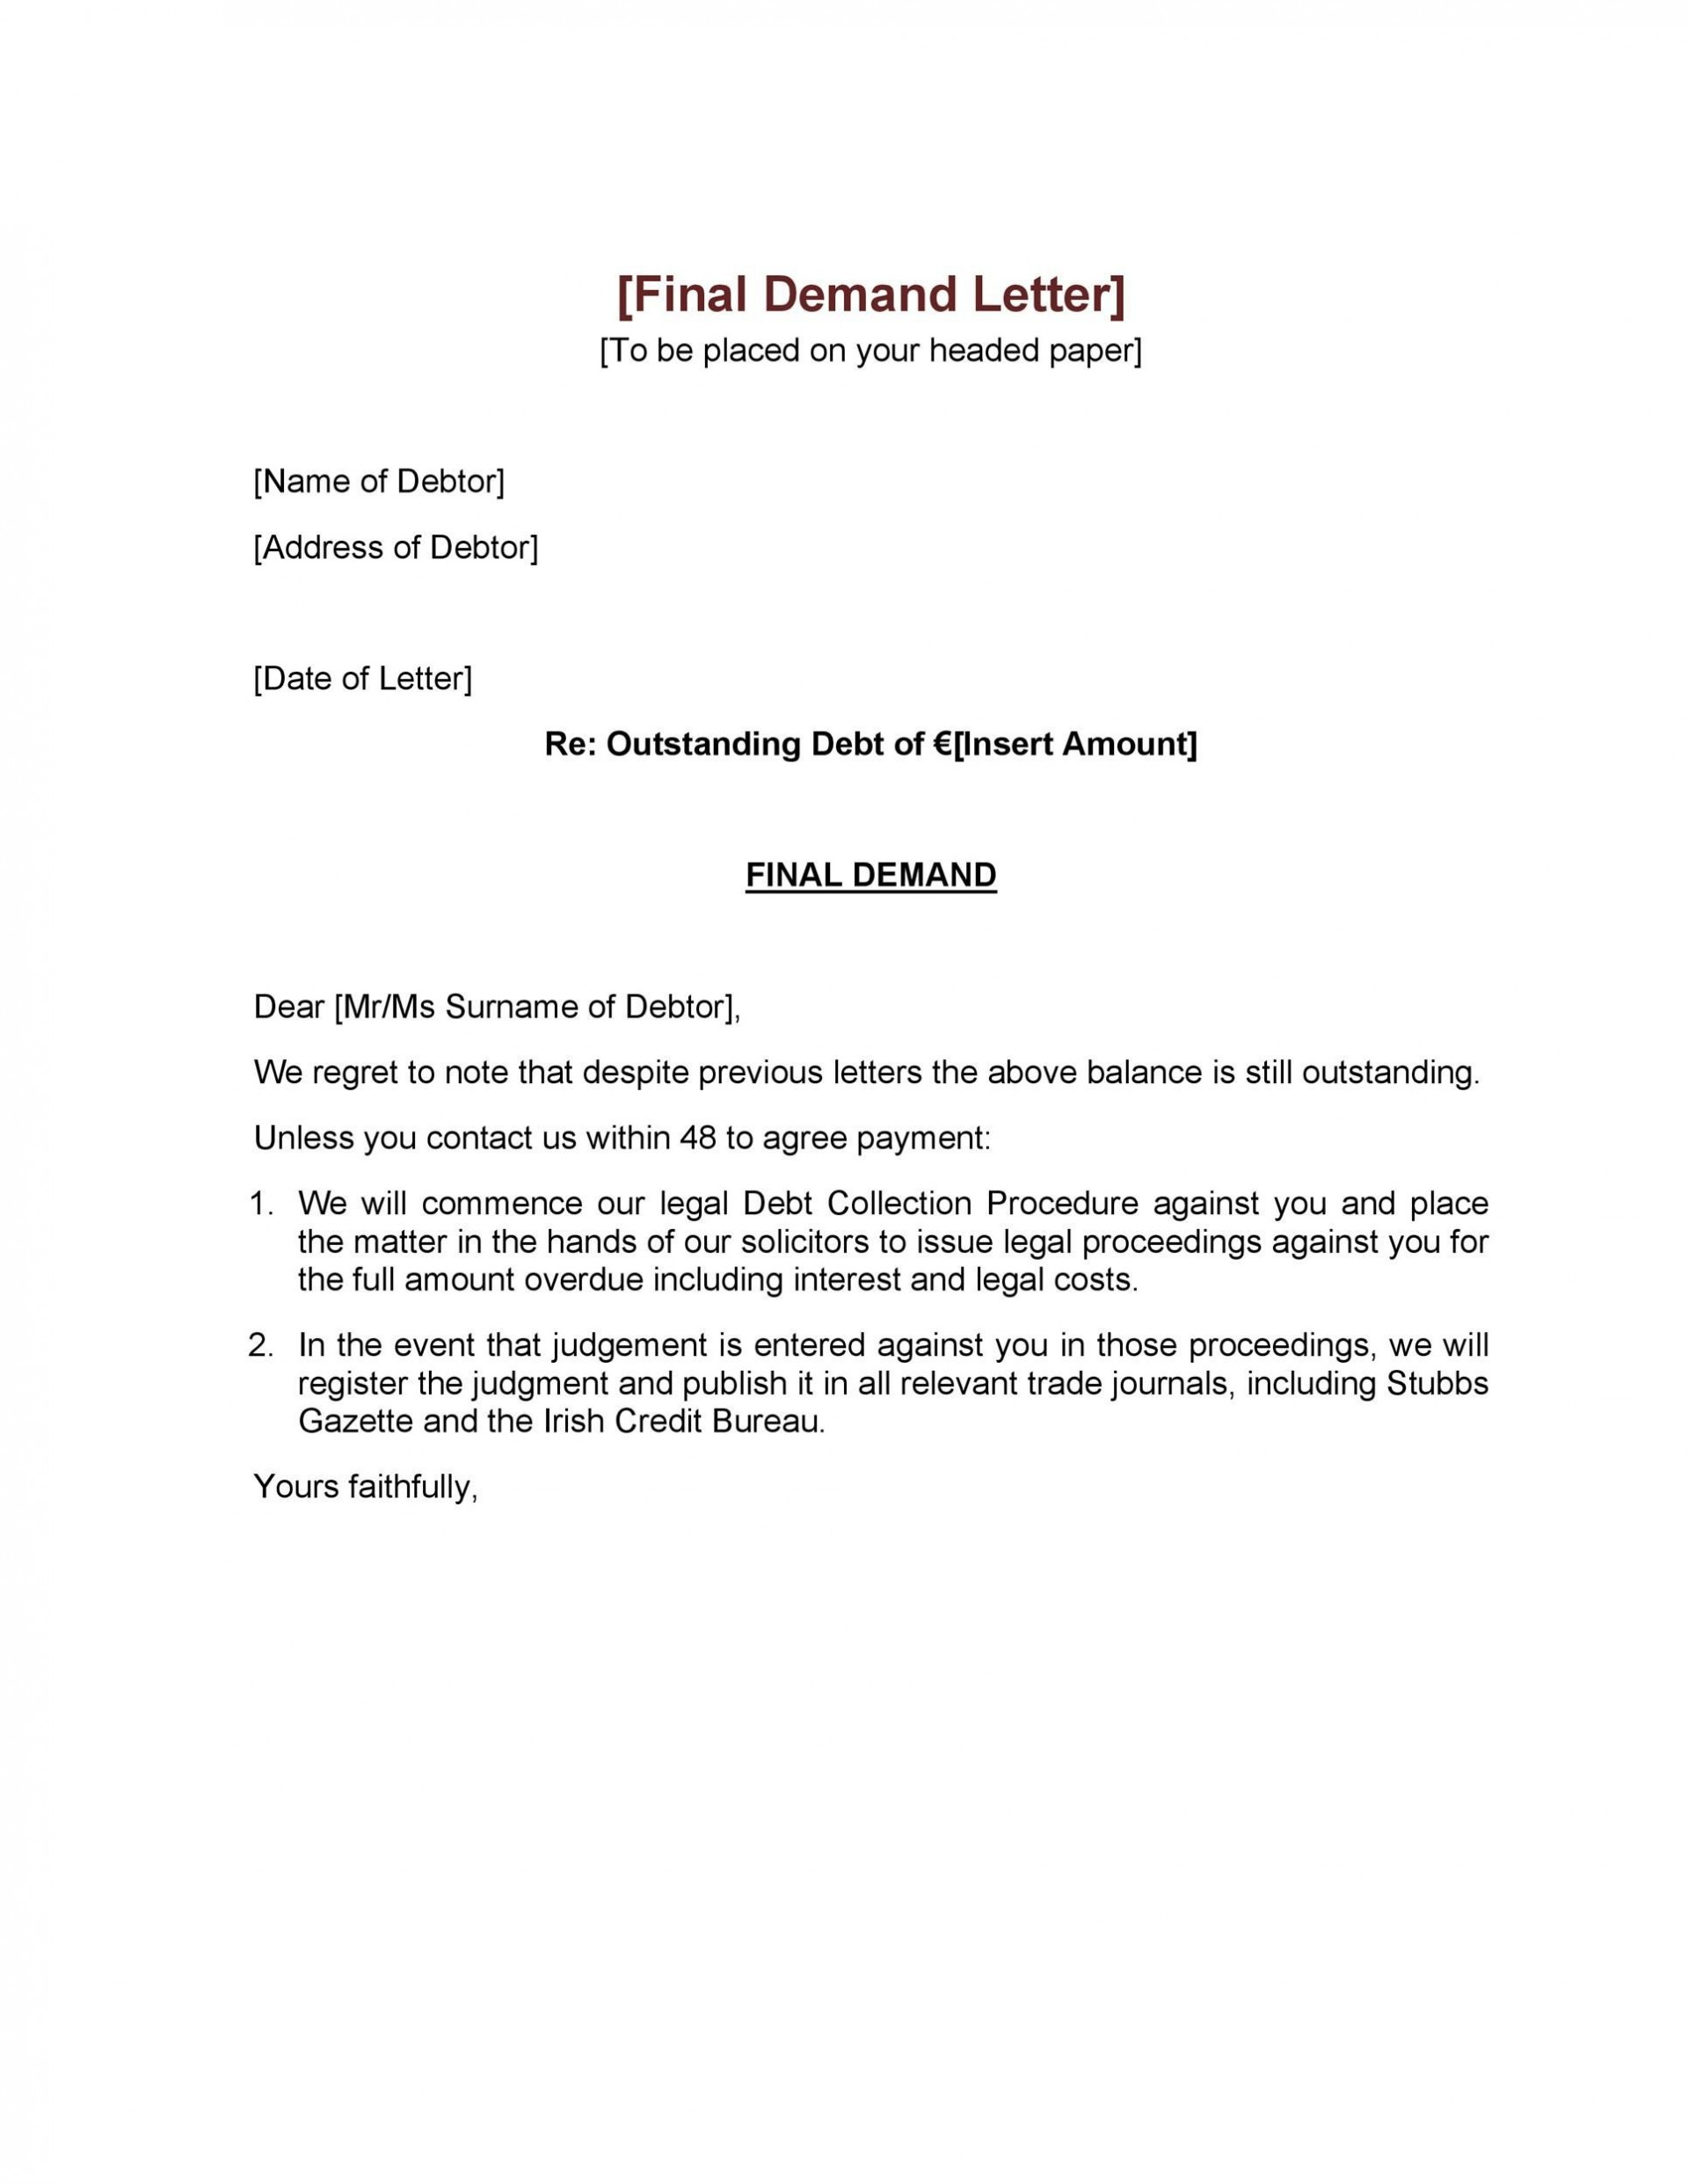 006 Astounding Final Payment Demand Letter Template Inspiration  For Uk1920